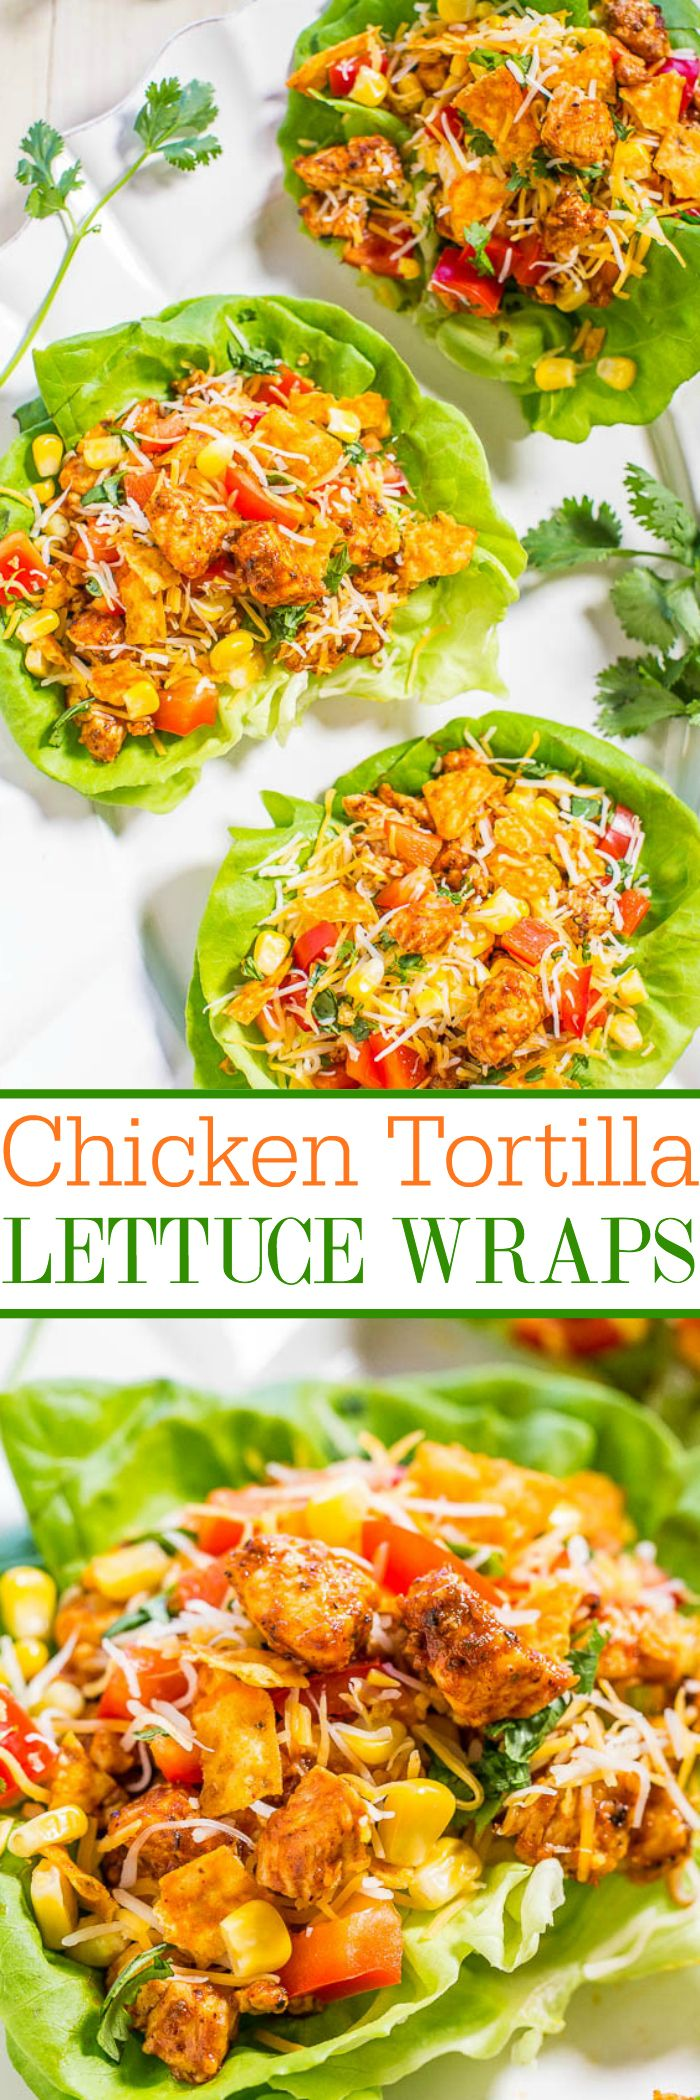 Chicken Tortilla Lettuce Wraps – Filled with Mexican flavors, there's taco-seasoned chicken, tomatoes, cor